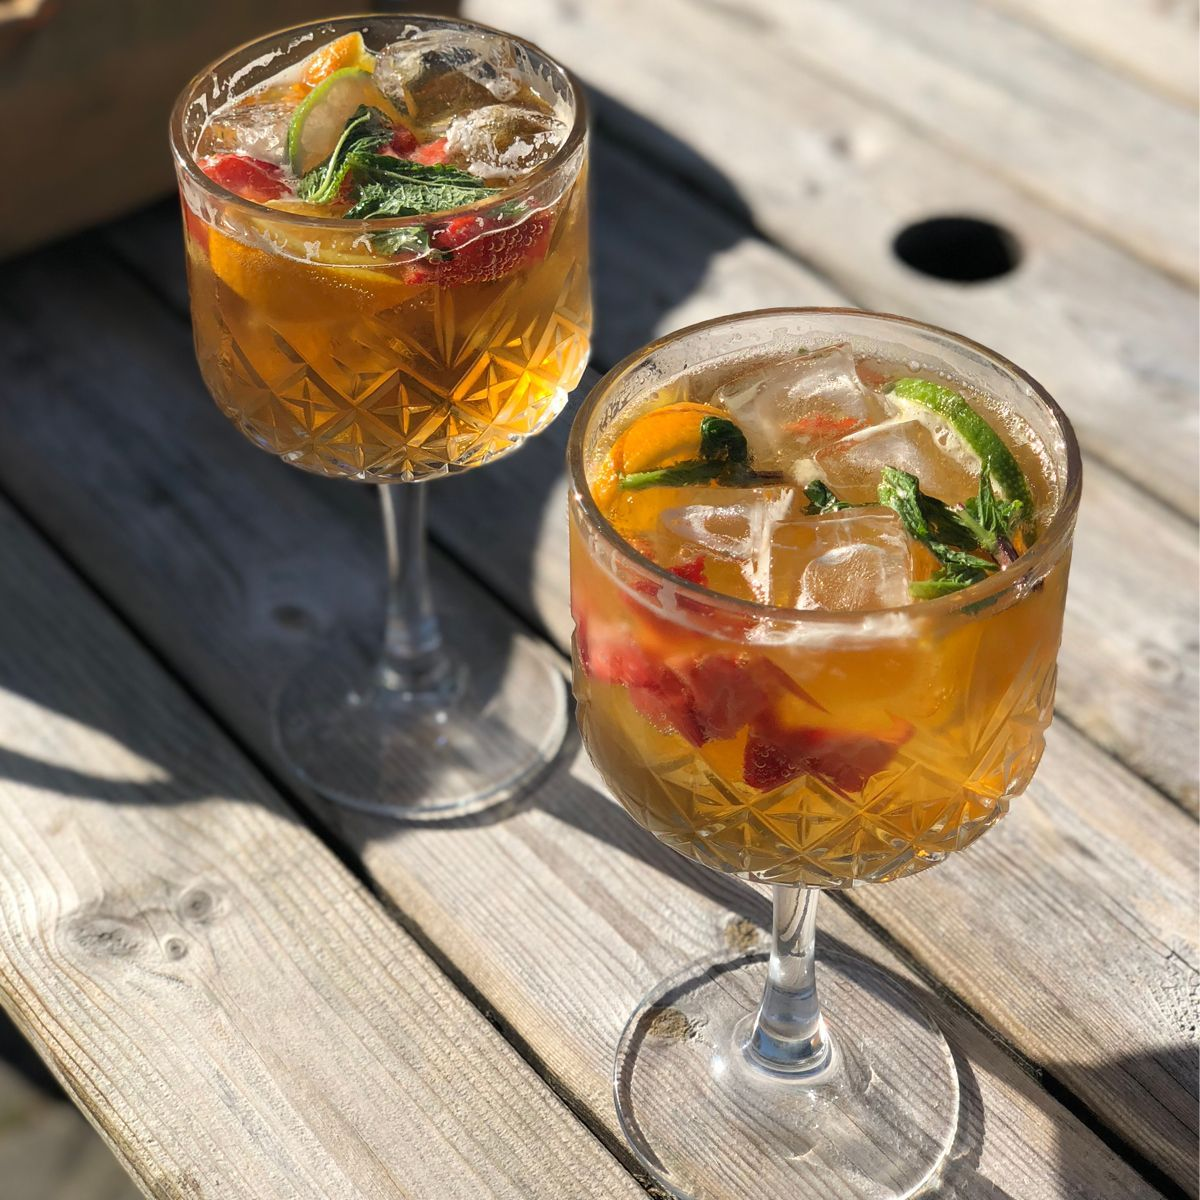 You don't have to be in England to enjoy a Pimm's Cup, a refreshing mix of spirits, citrus, fruit, and fizz. Delicious on any day, but practically medicinal when it's hot out. Made with Pimm's No. 1, a gin-based digestif created by Londoner James Pimm, we shake and strain our Pimm's Cup, but it can also be built in the glass (or pitcher) and is perfect for day-drinking. Even when Wimbledon isn't on. There are many different recipes for this classic cooler. Some use ginger ale. Some use sparkling lemonade. Anything that sparkles and is a flavor you like is the best way to go.